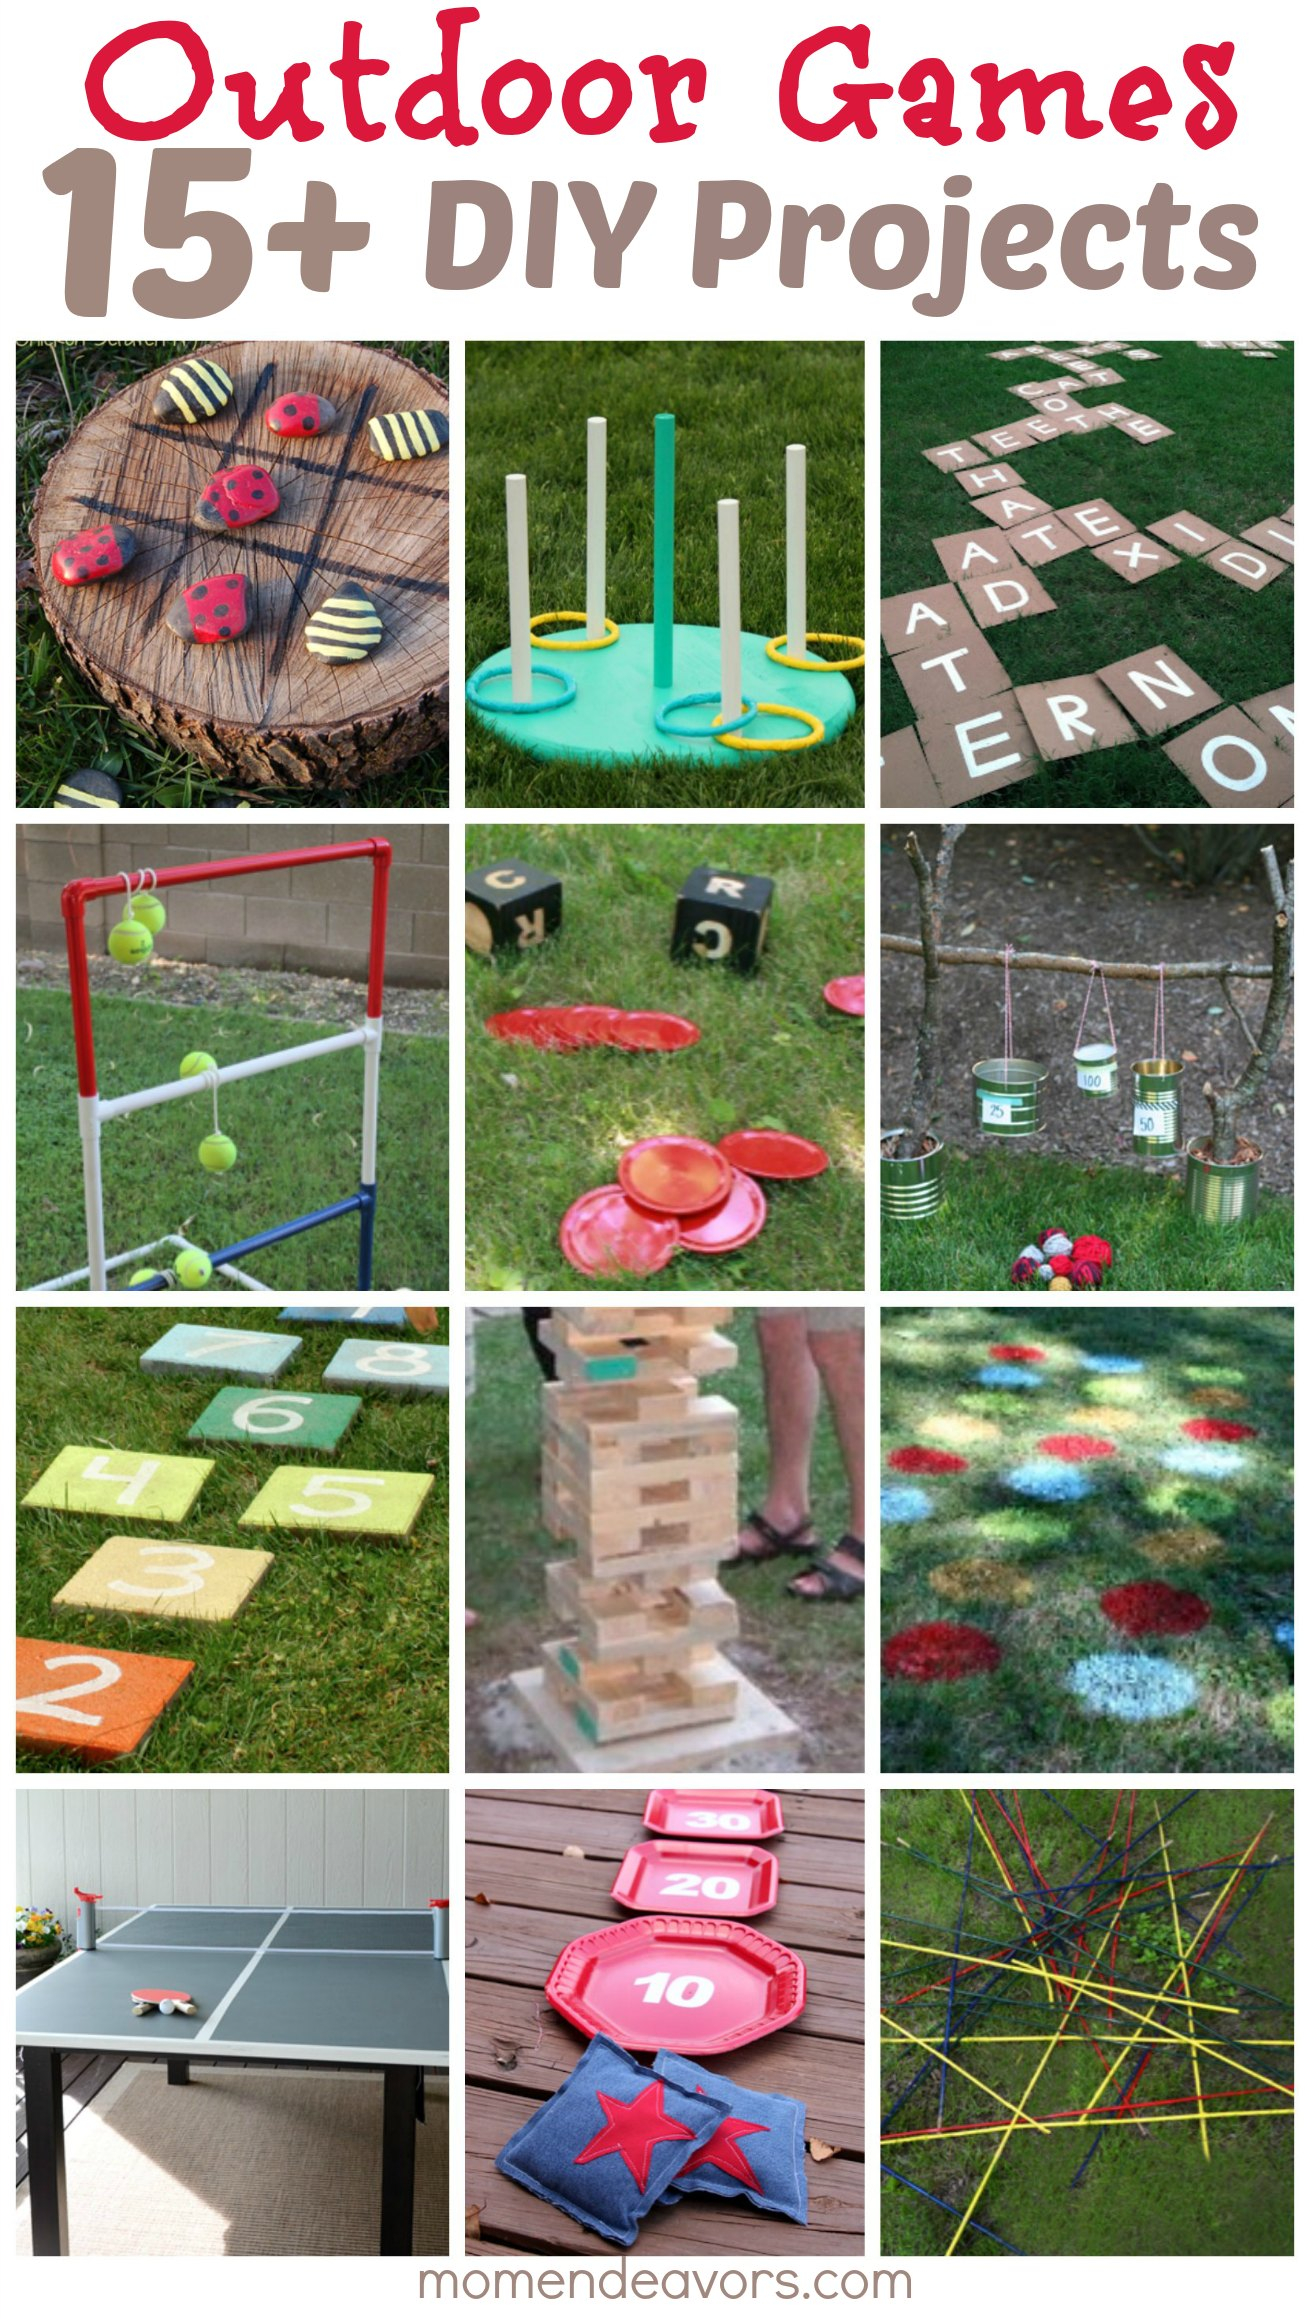 Diy Outdoor Games 15 Awesome Project Ideas For Backyard Fun pertaining to 15 Awesome Designs of How to Craft Backyard Game Ideas For Adults